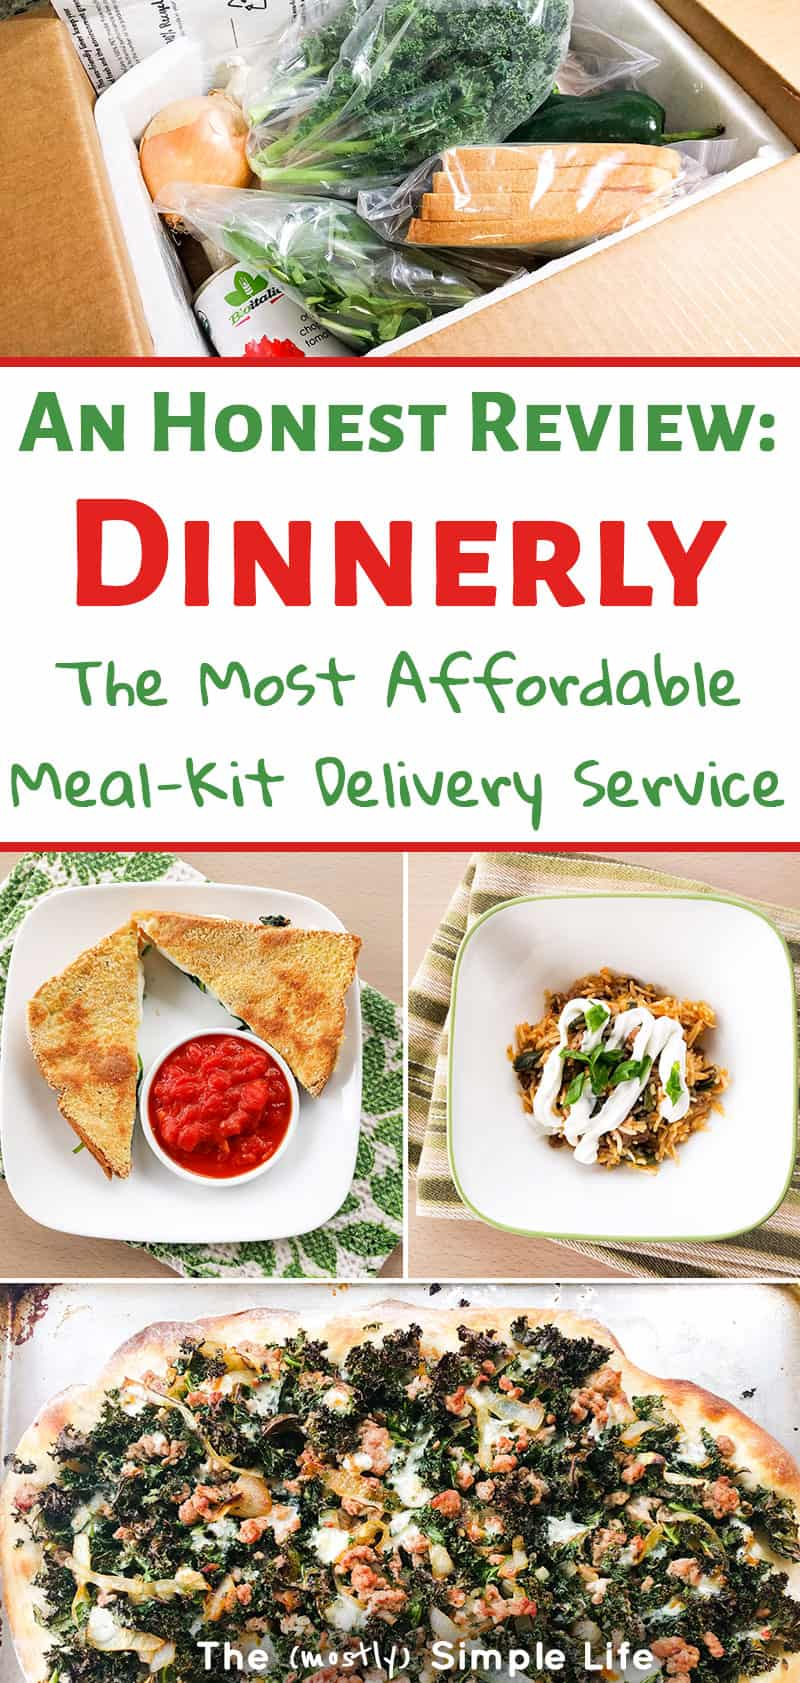 Check out this honest review of Dinnerly, the cheap meal delivery service. Are they the best meal kit delivery for families? Read all about this affordable dinner box! #mealkit #mealdelivery #dinnerly #blueapron #mealkitdelivery #easydinner #healthydinner #30minutesmeals